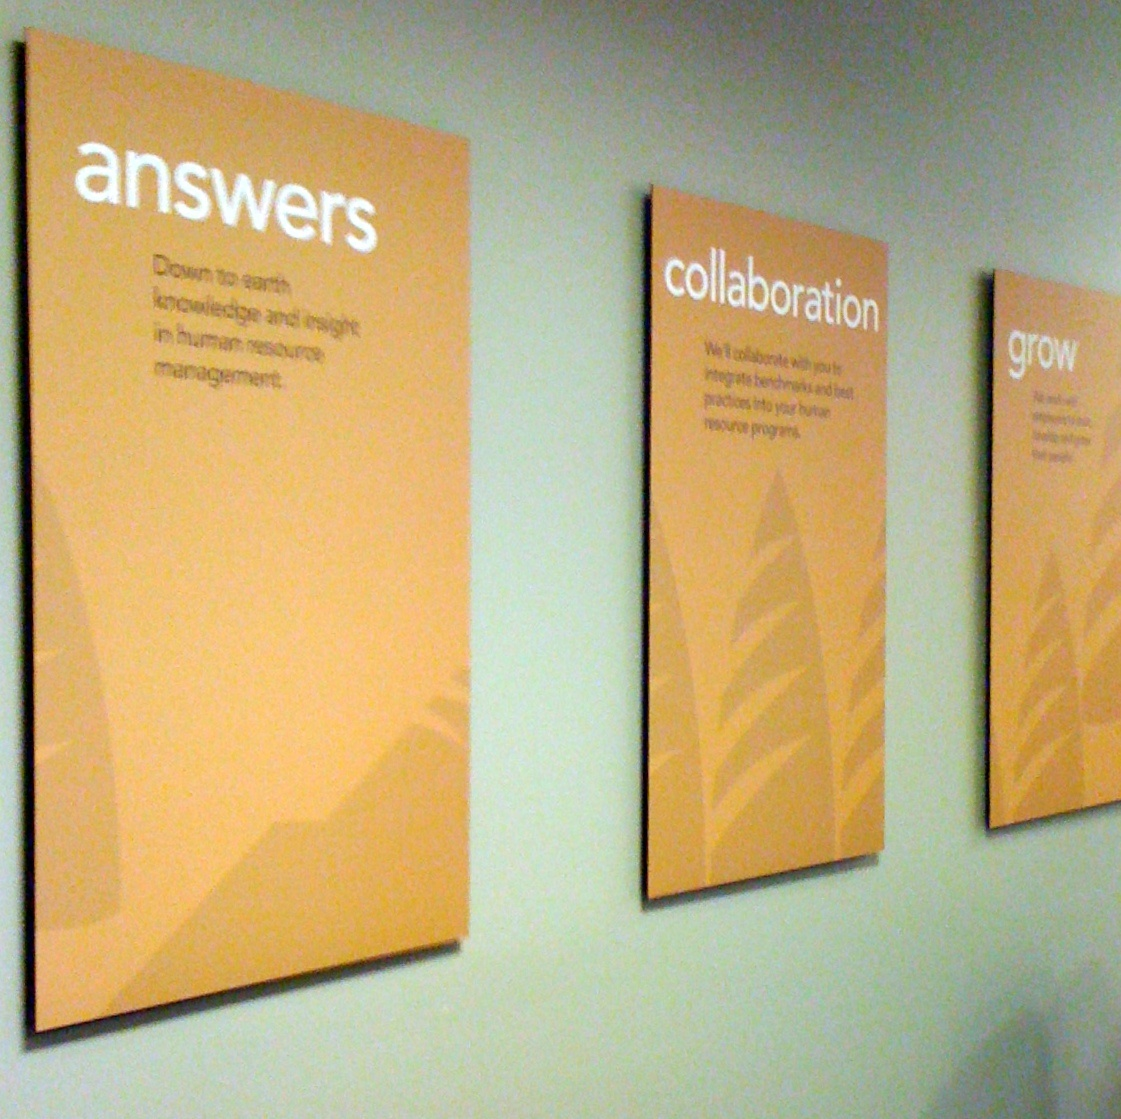 This nonprofit marketing brand refresh included posters displaying their key messages.